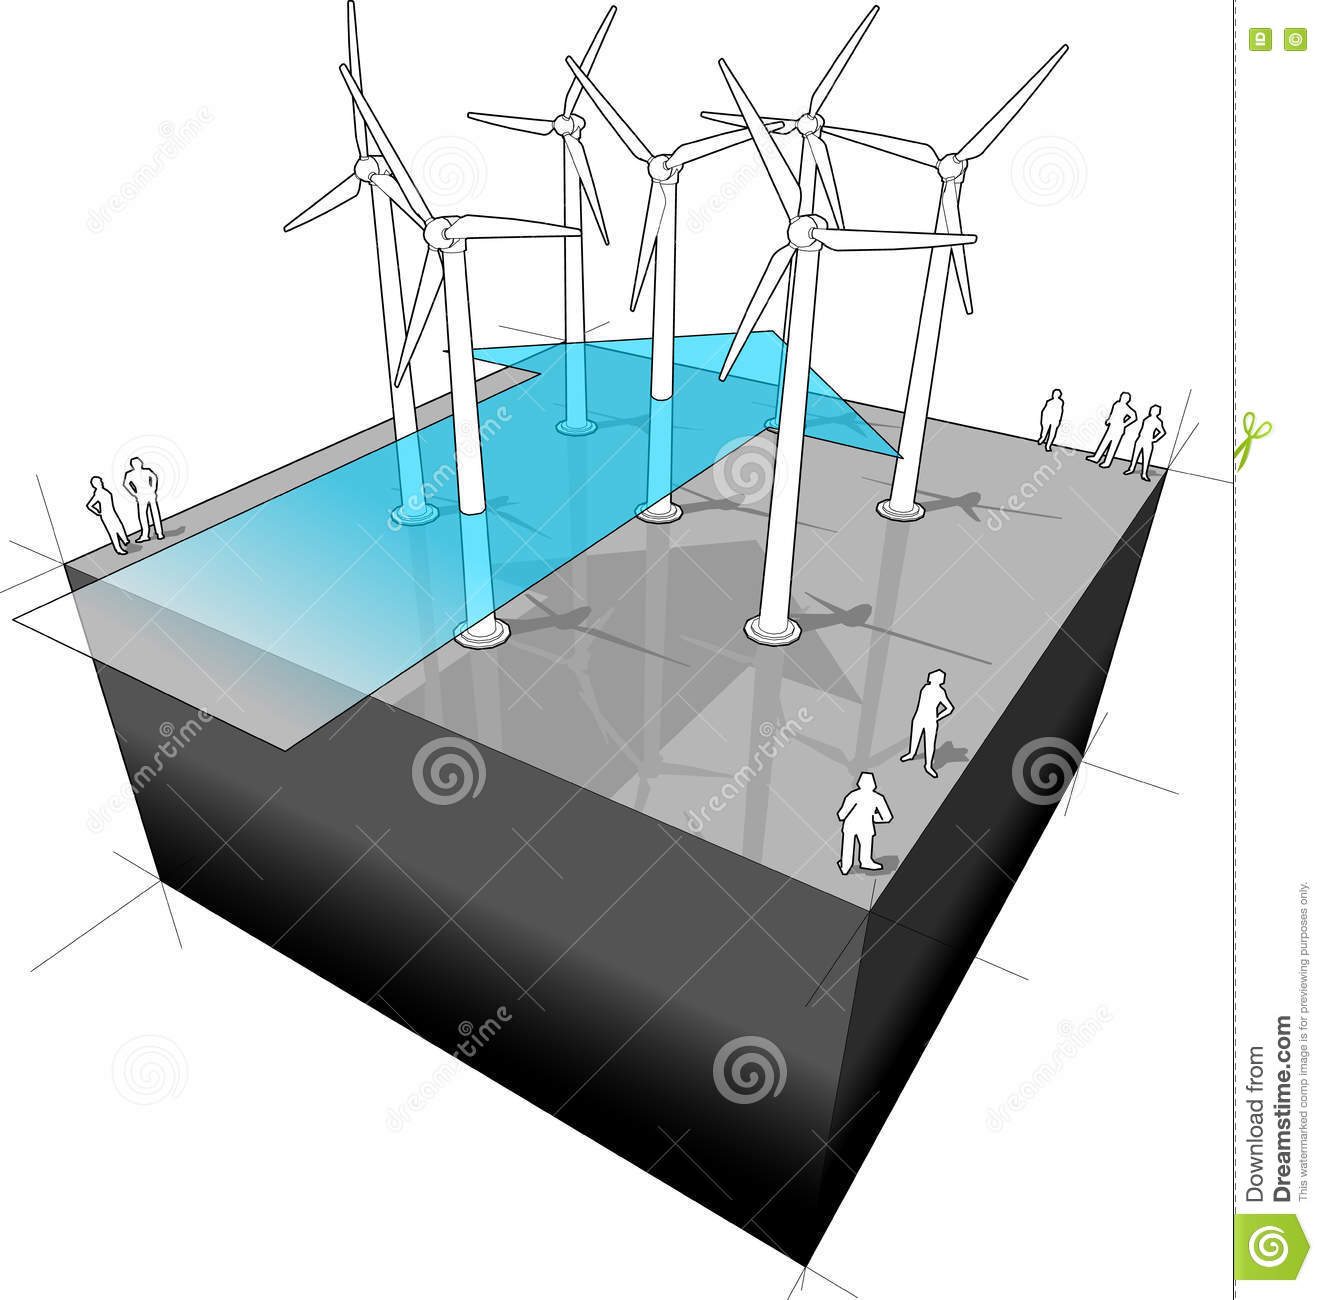 Wind Farm With Arrow Diagram Stock Vector Illustration Of Turbines